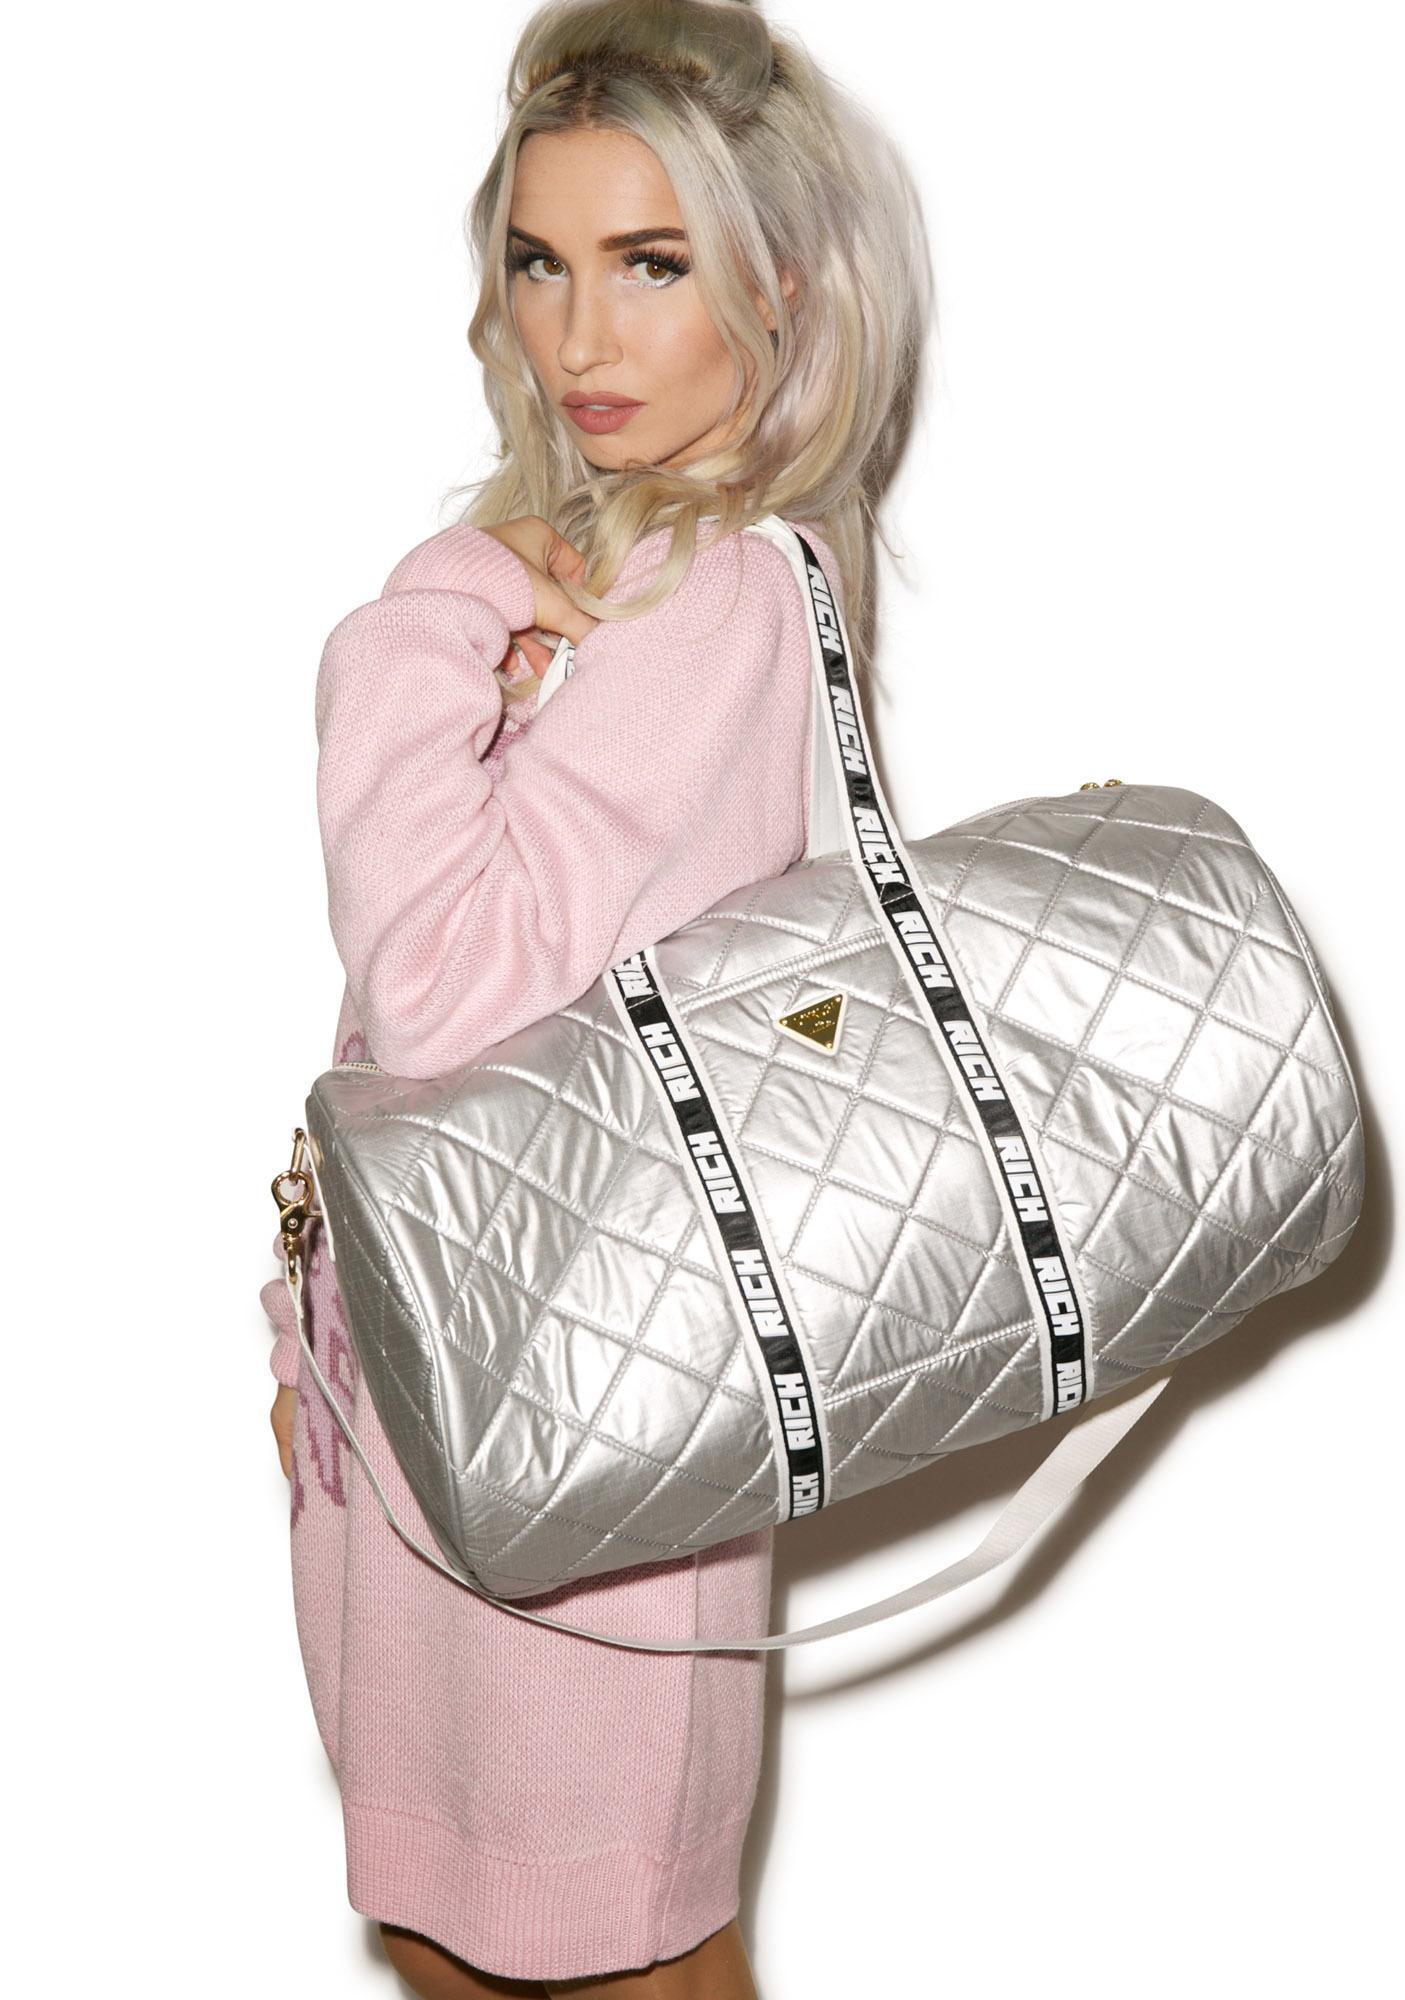 Joyrich Silver Sheen Boston Bag